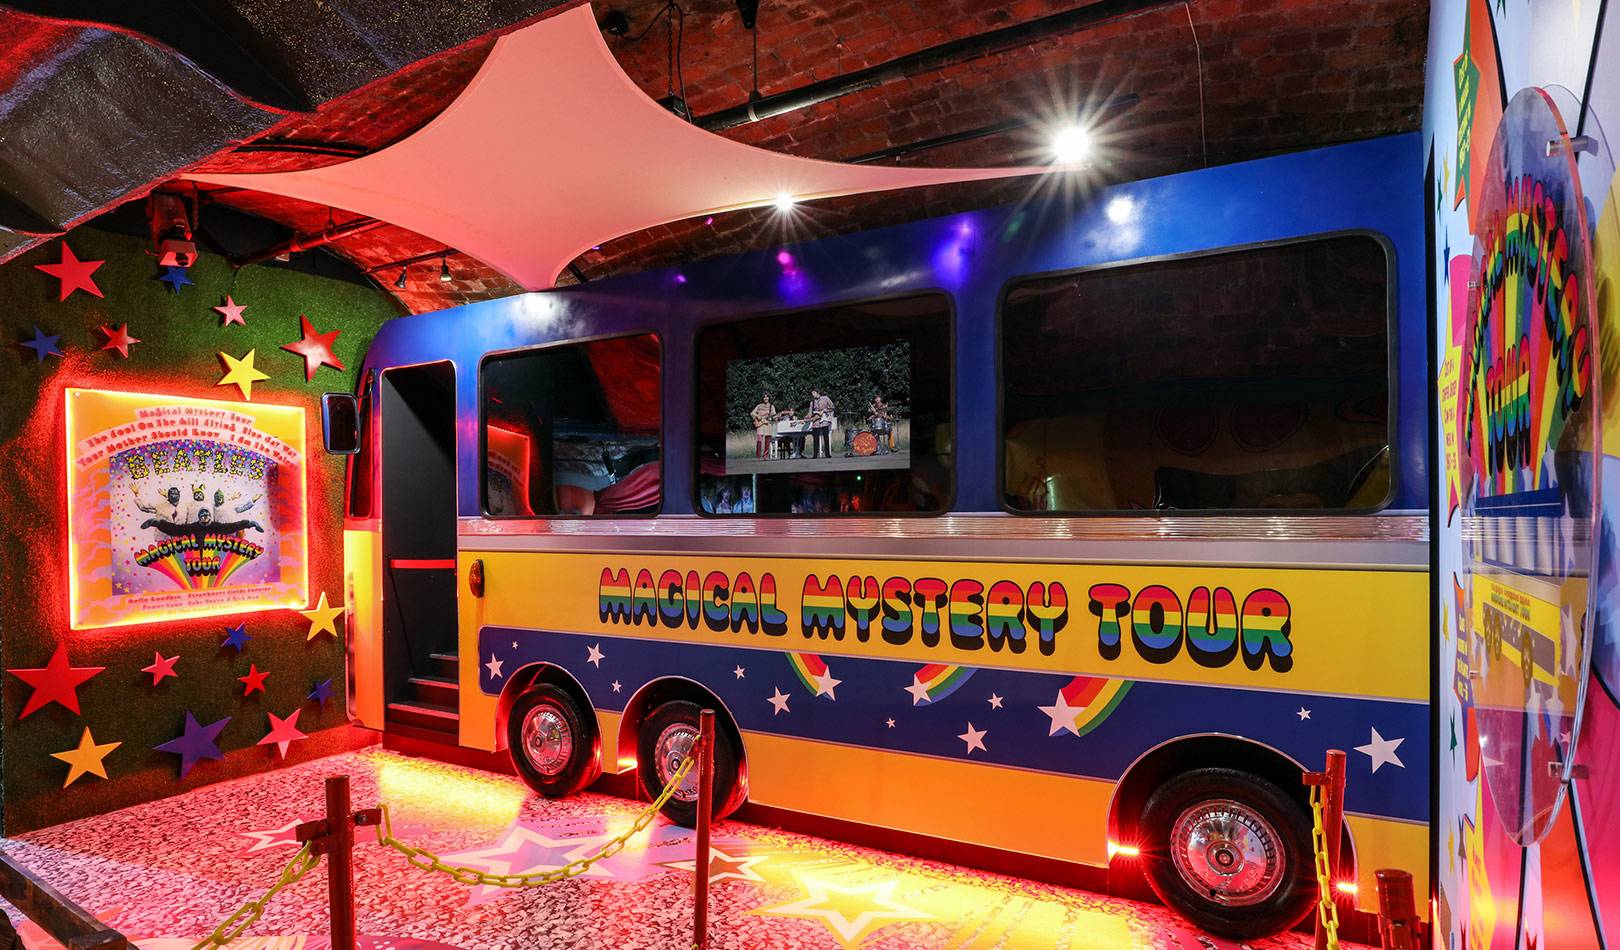 Beatles bus from the Magical Mystery Tour, The Beatles Story Liverpool.